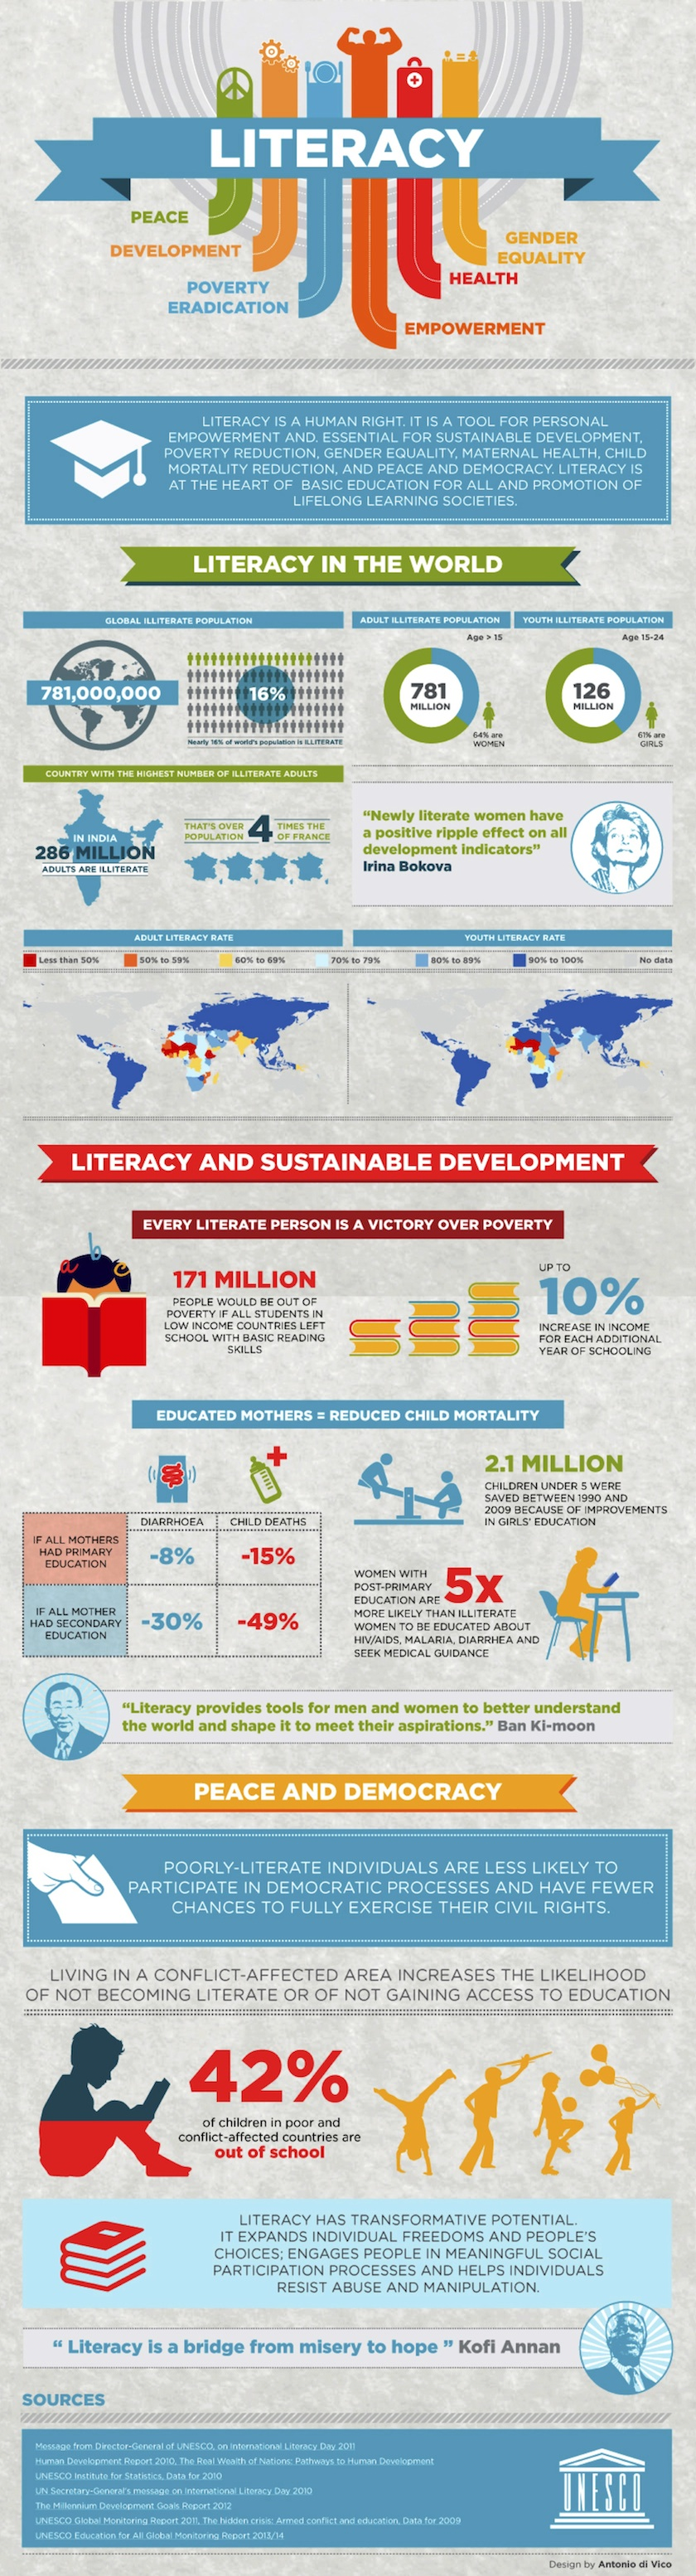 Literacy in the world 2014 #infographic